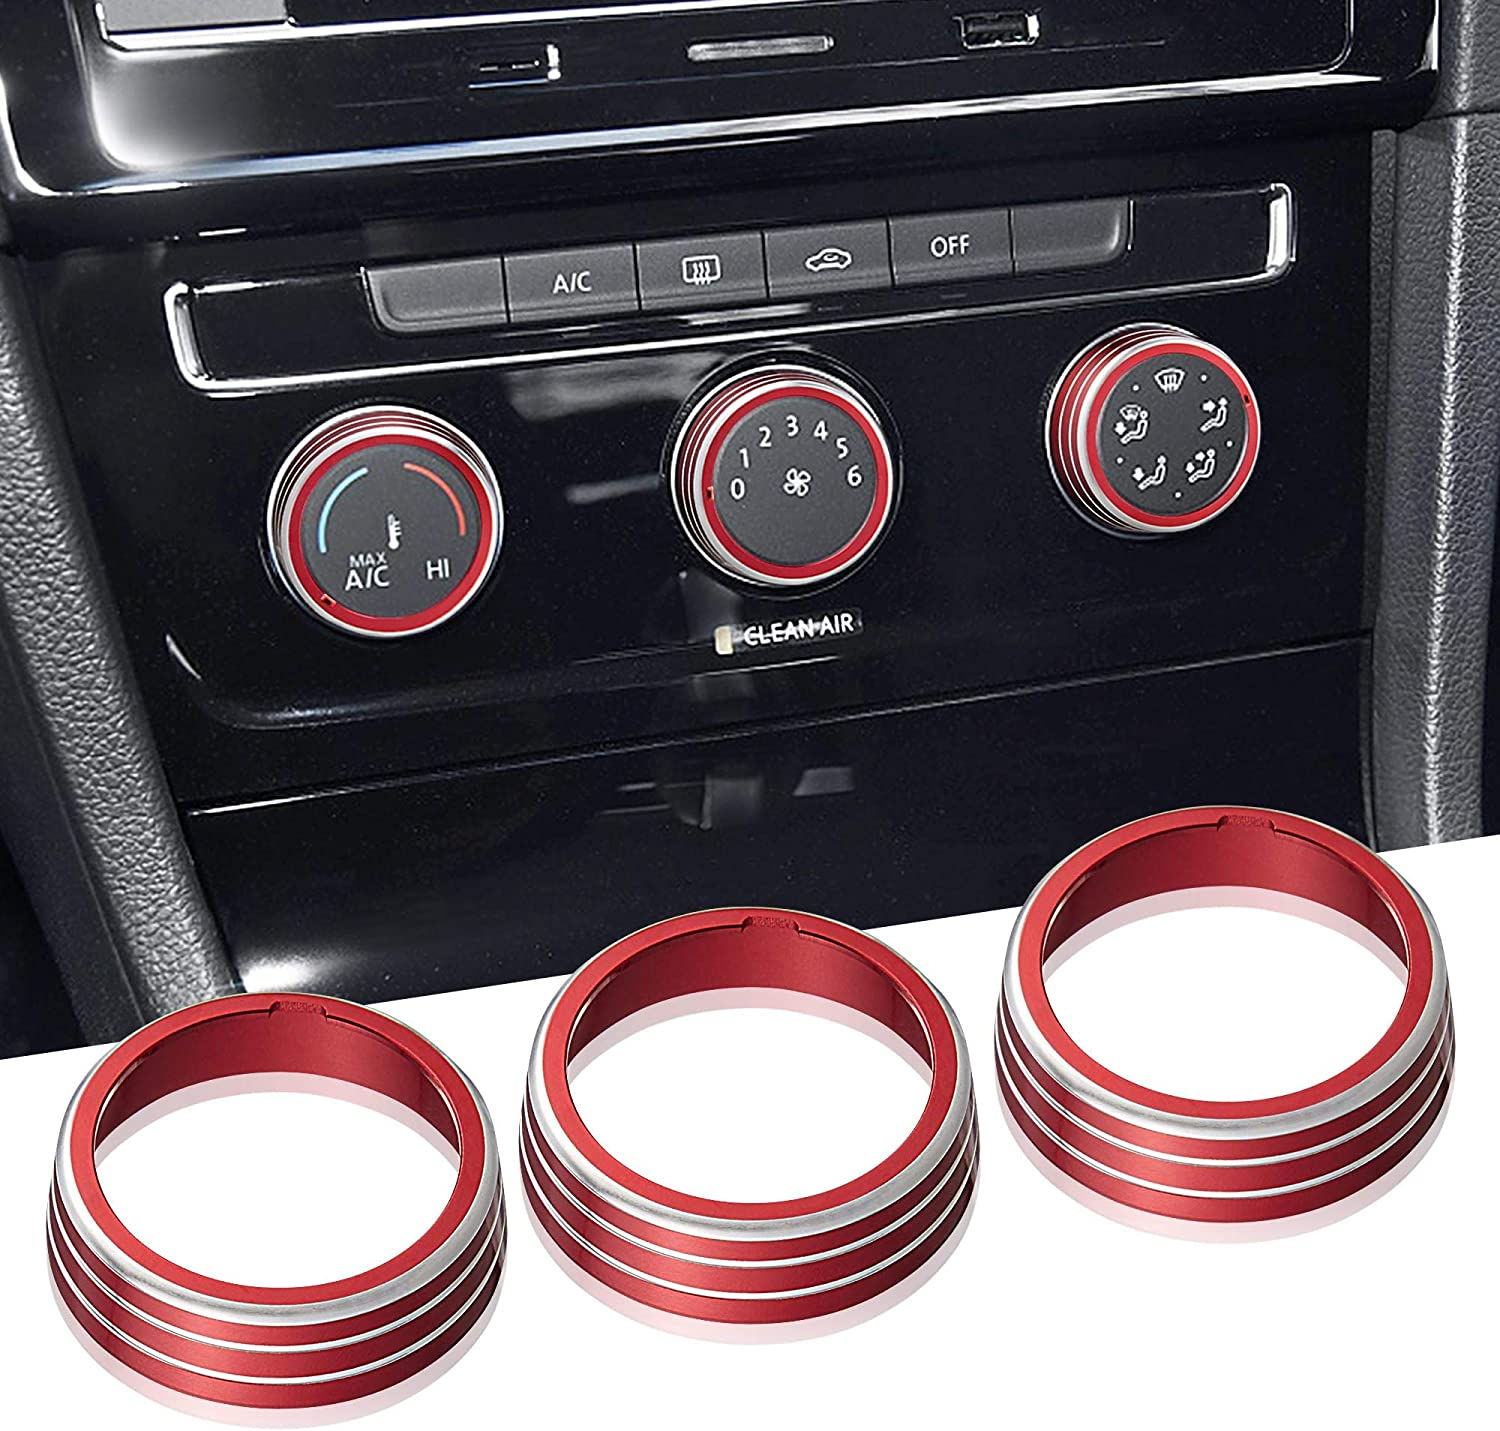 TOMALL 3pcs Aluminum Centre Console Cover Compatible with Volkswagen MK7 Golf GTI AC Air Conditioning Knob Button Cover Trim Decoration Ring (Red)